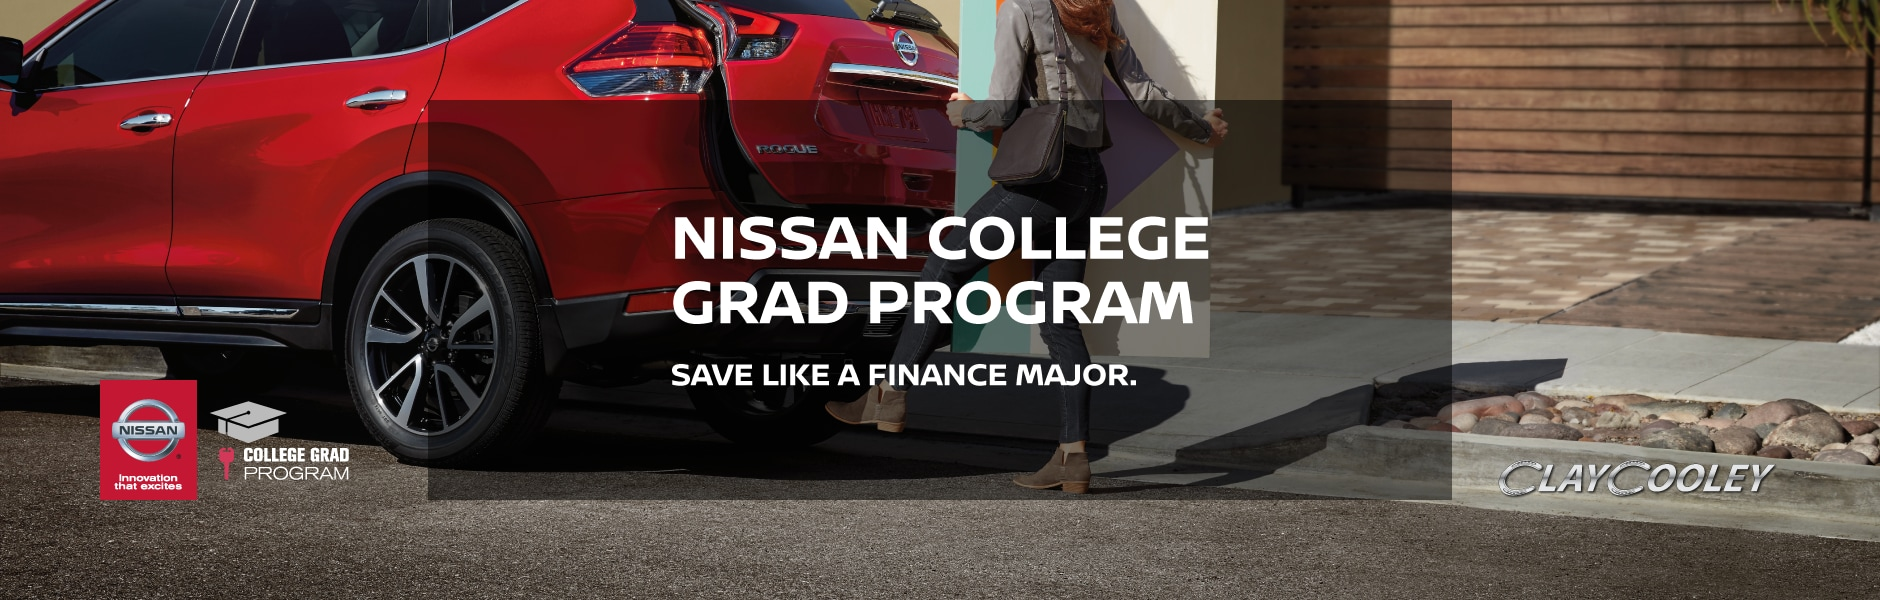 Nissan graduate program in dallas